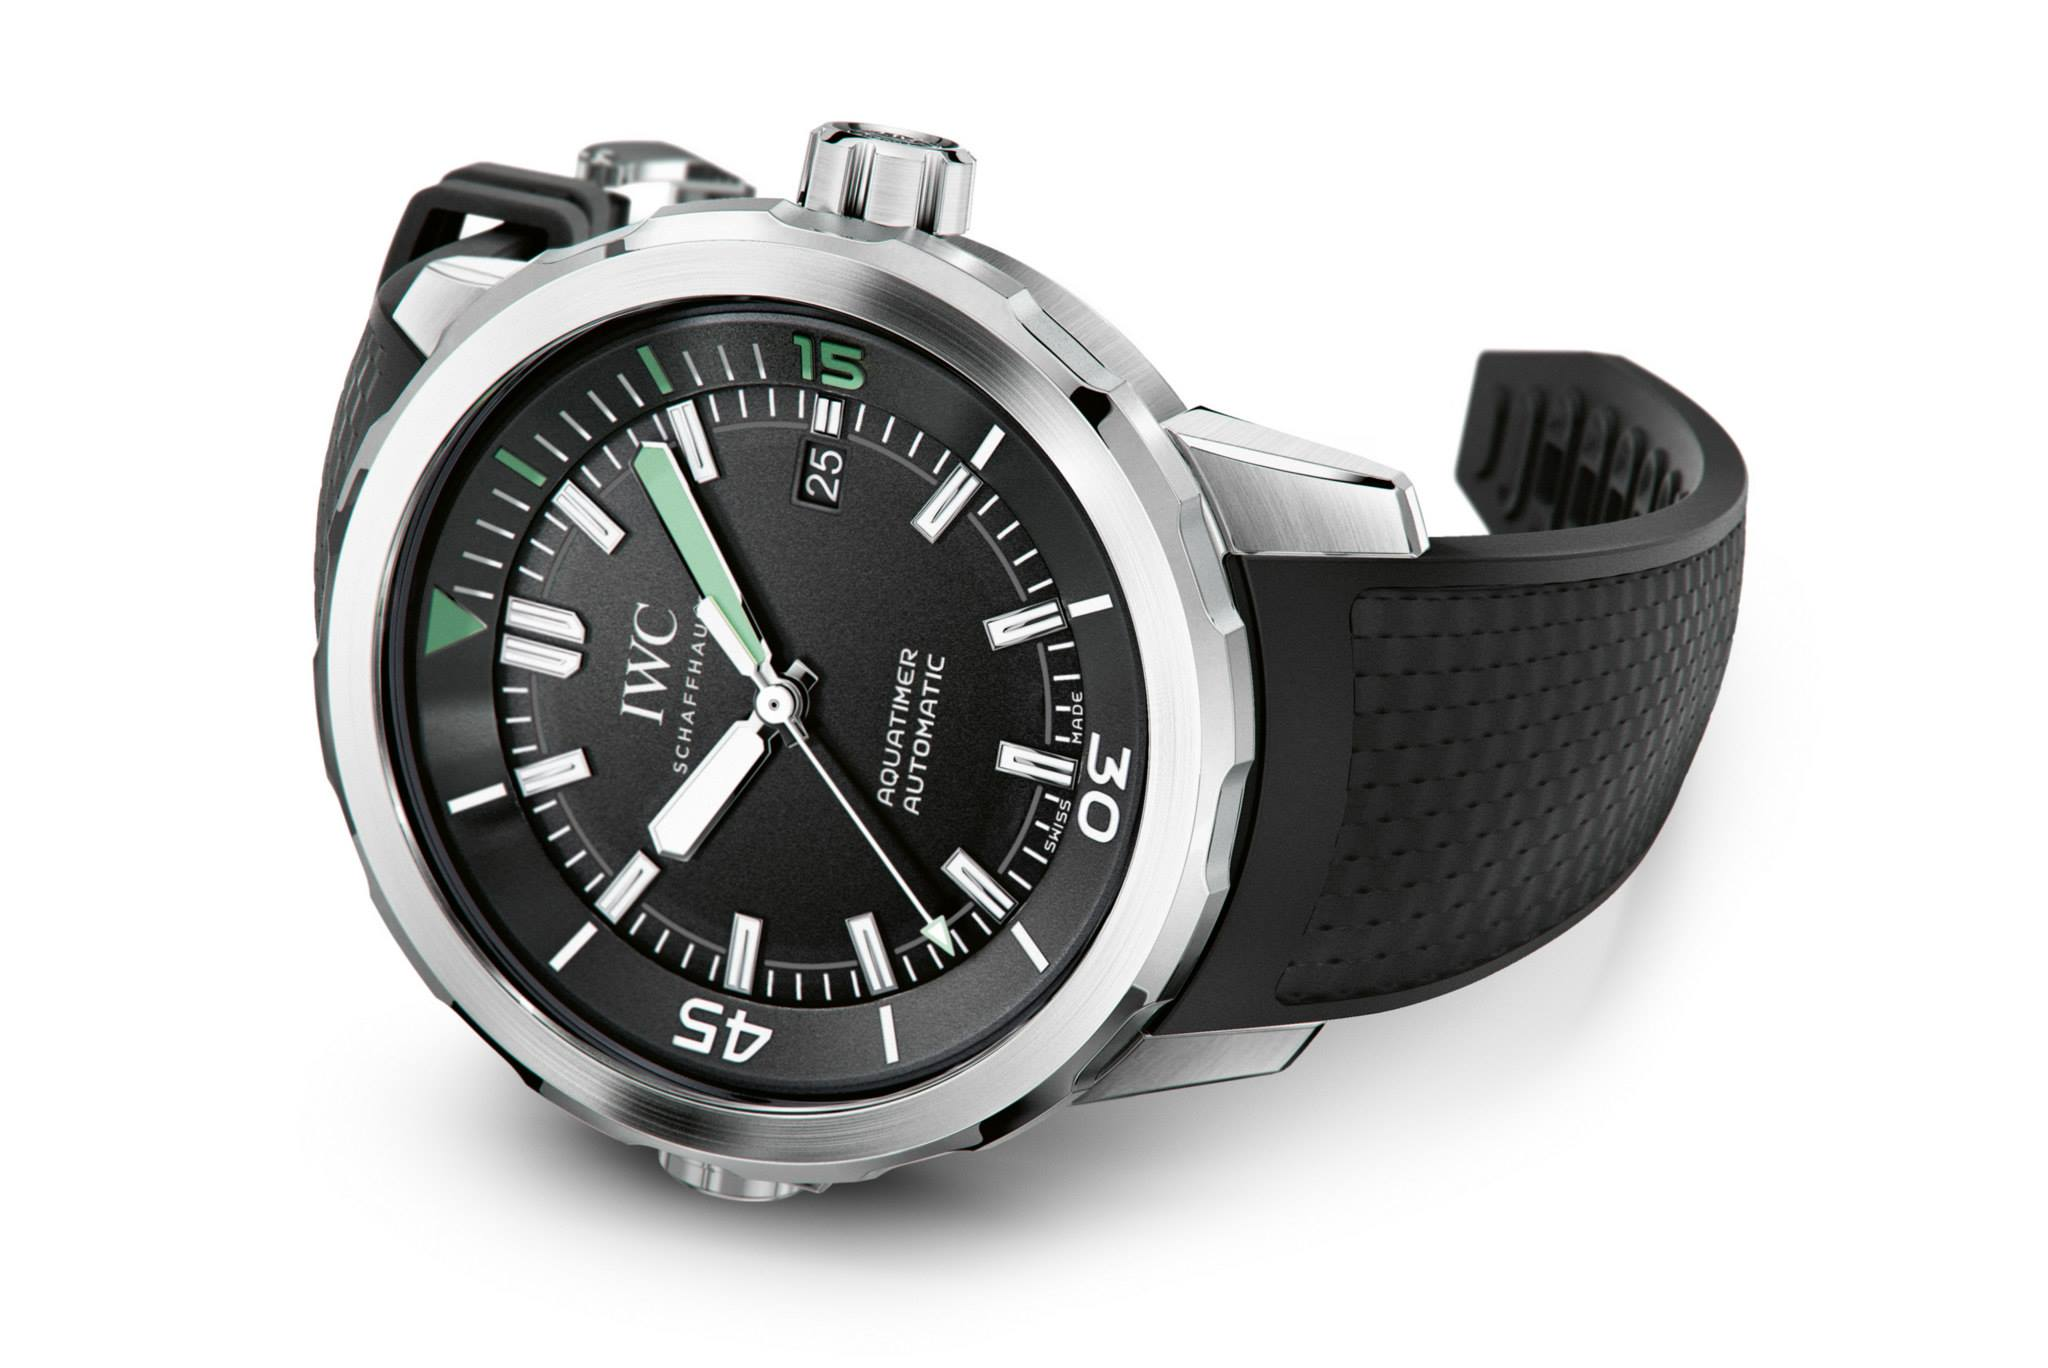 Naziv: IWC-Aquatimer-Automatic-2014-collection-watches-4.jpg, pregleda: 436, veličina: 150,7 KB